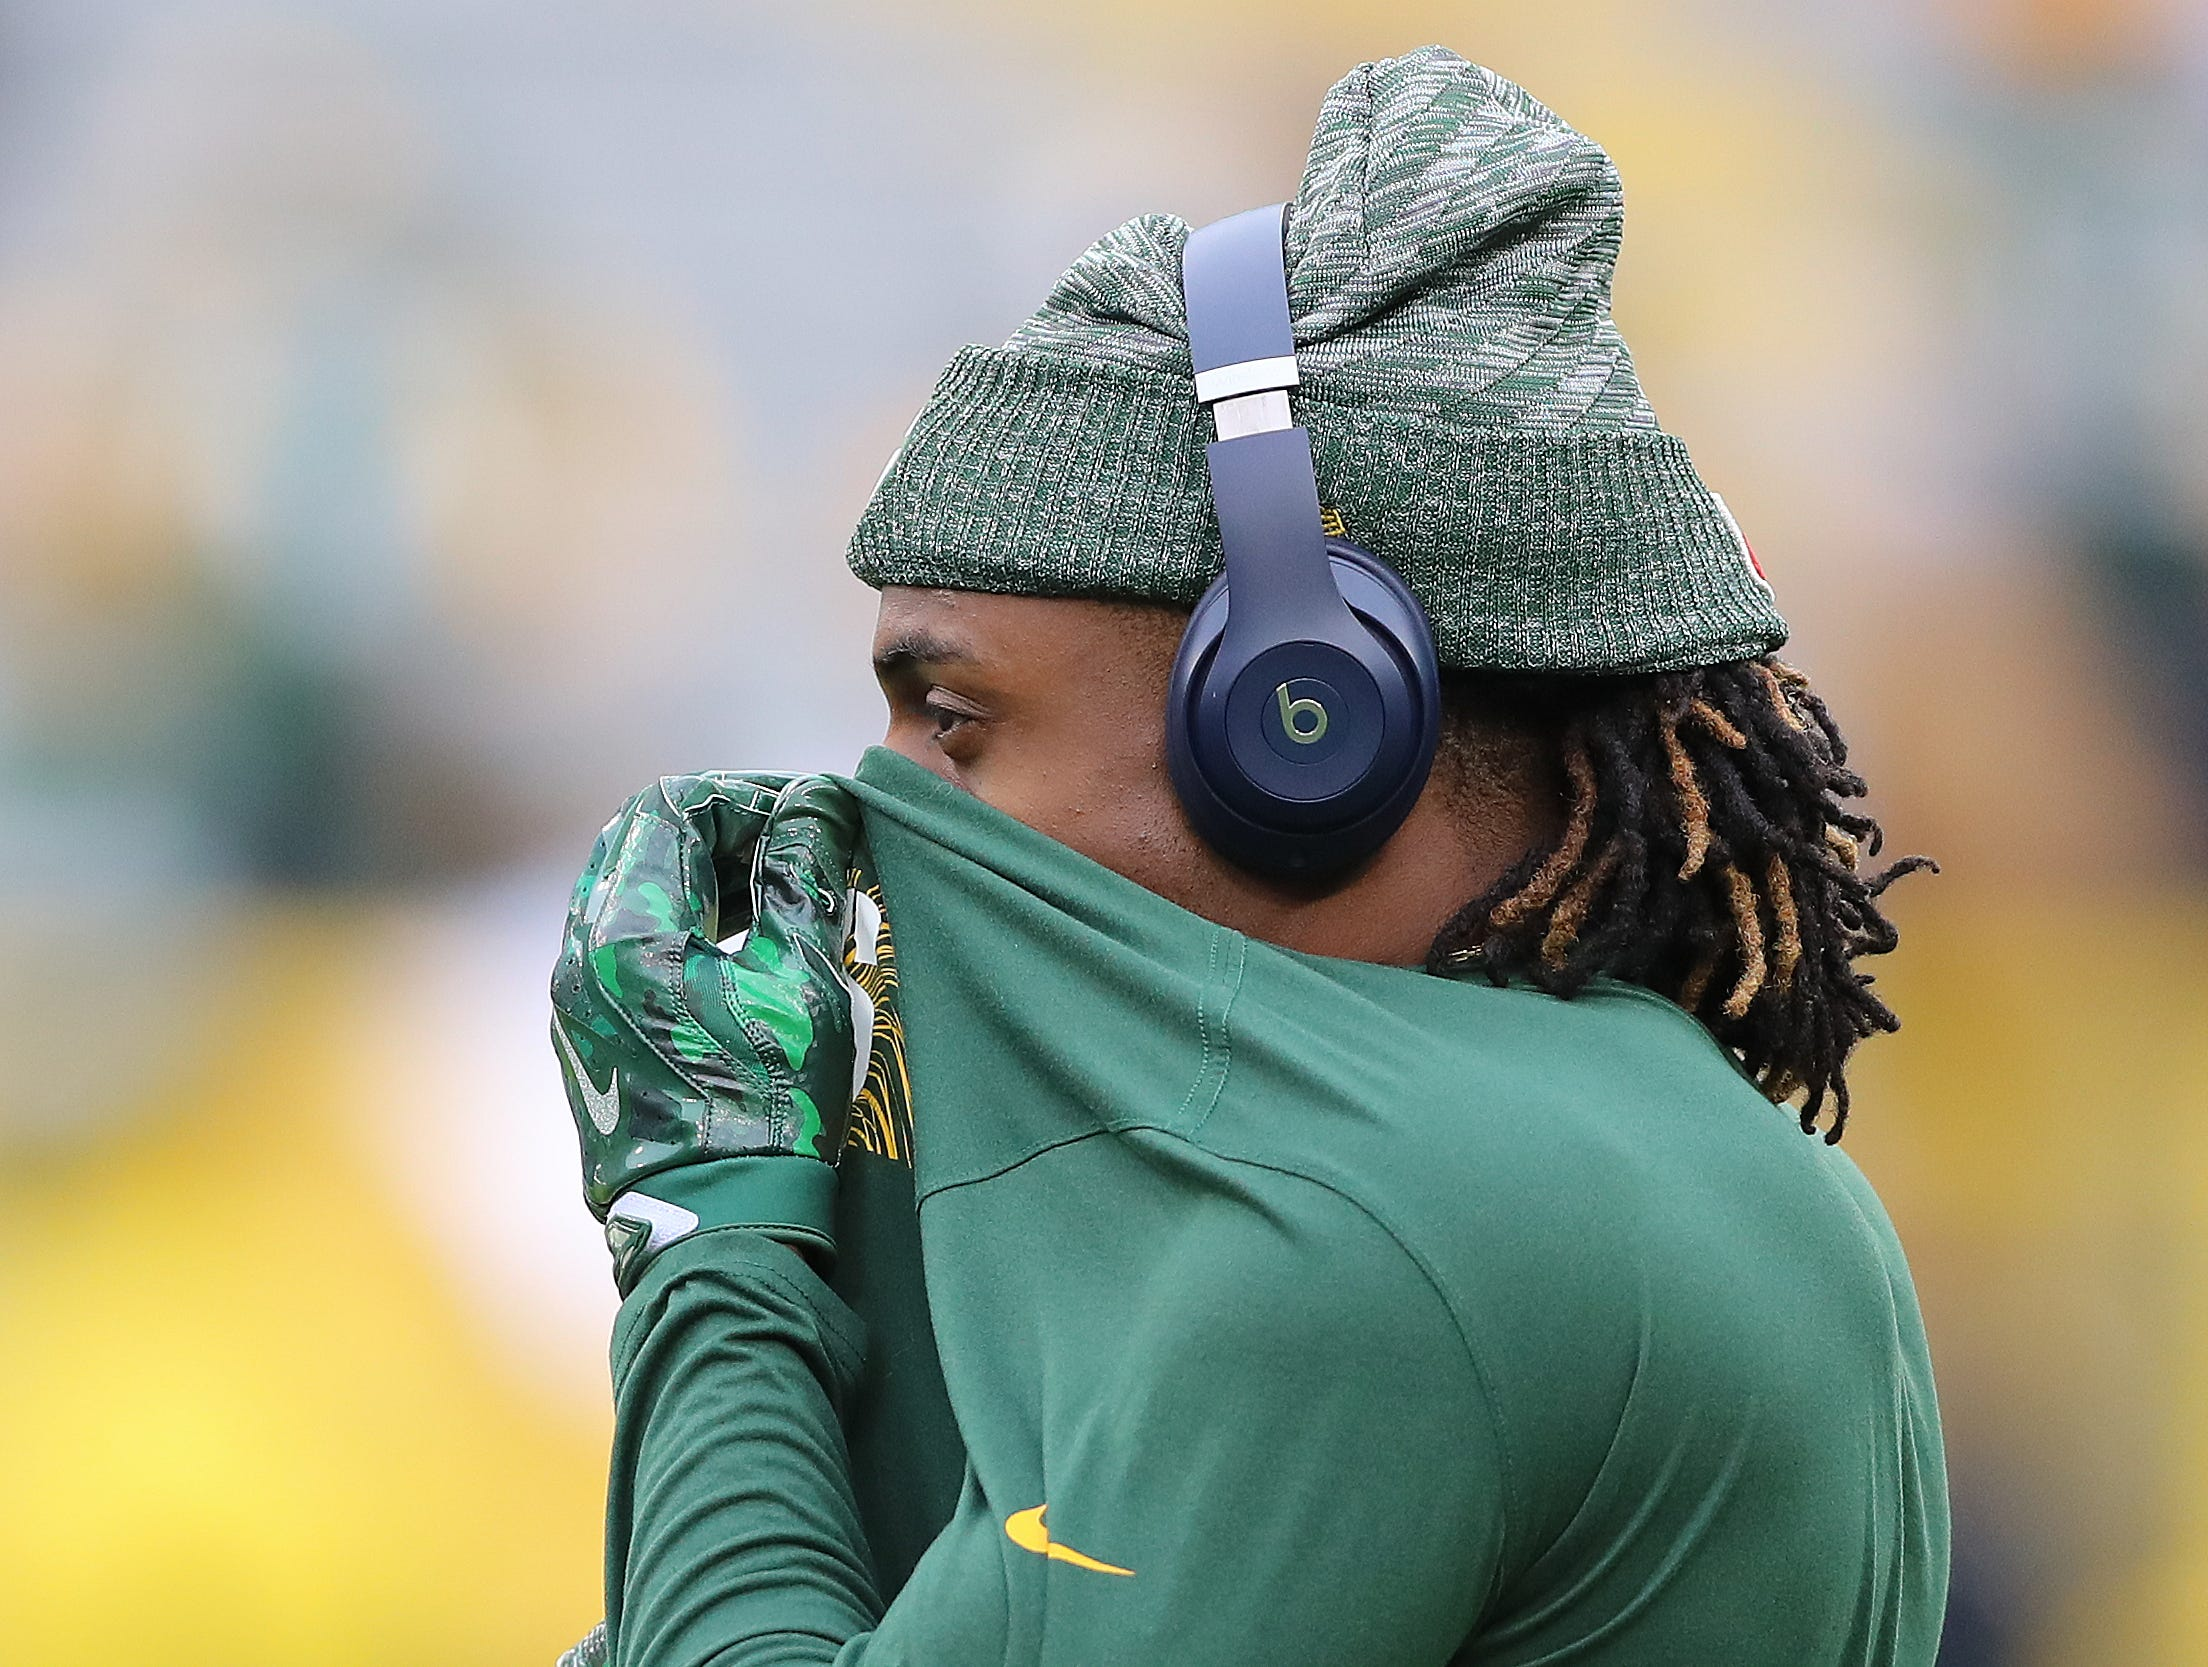 Green Bay Packers wide receiver Davante Adams (17) during warmups before the game against the Miami Dolphins at Lambeau Field Sunday, November 11, 2018 in Green Bay, Wis. Jim Matthews/USA TODAY NETWORK-Wis